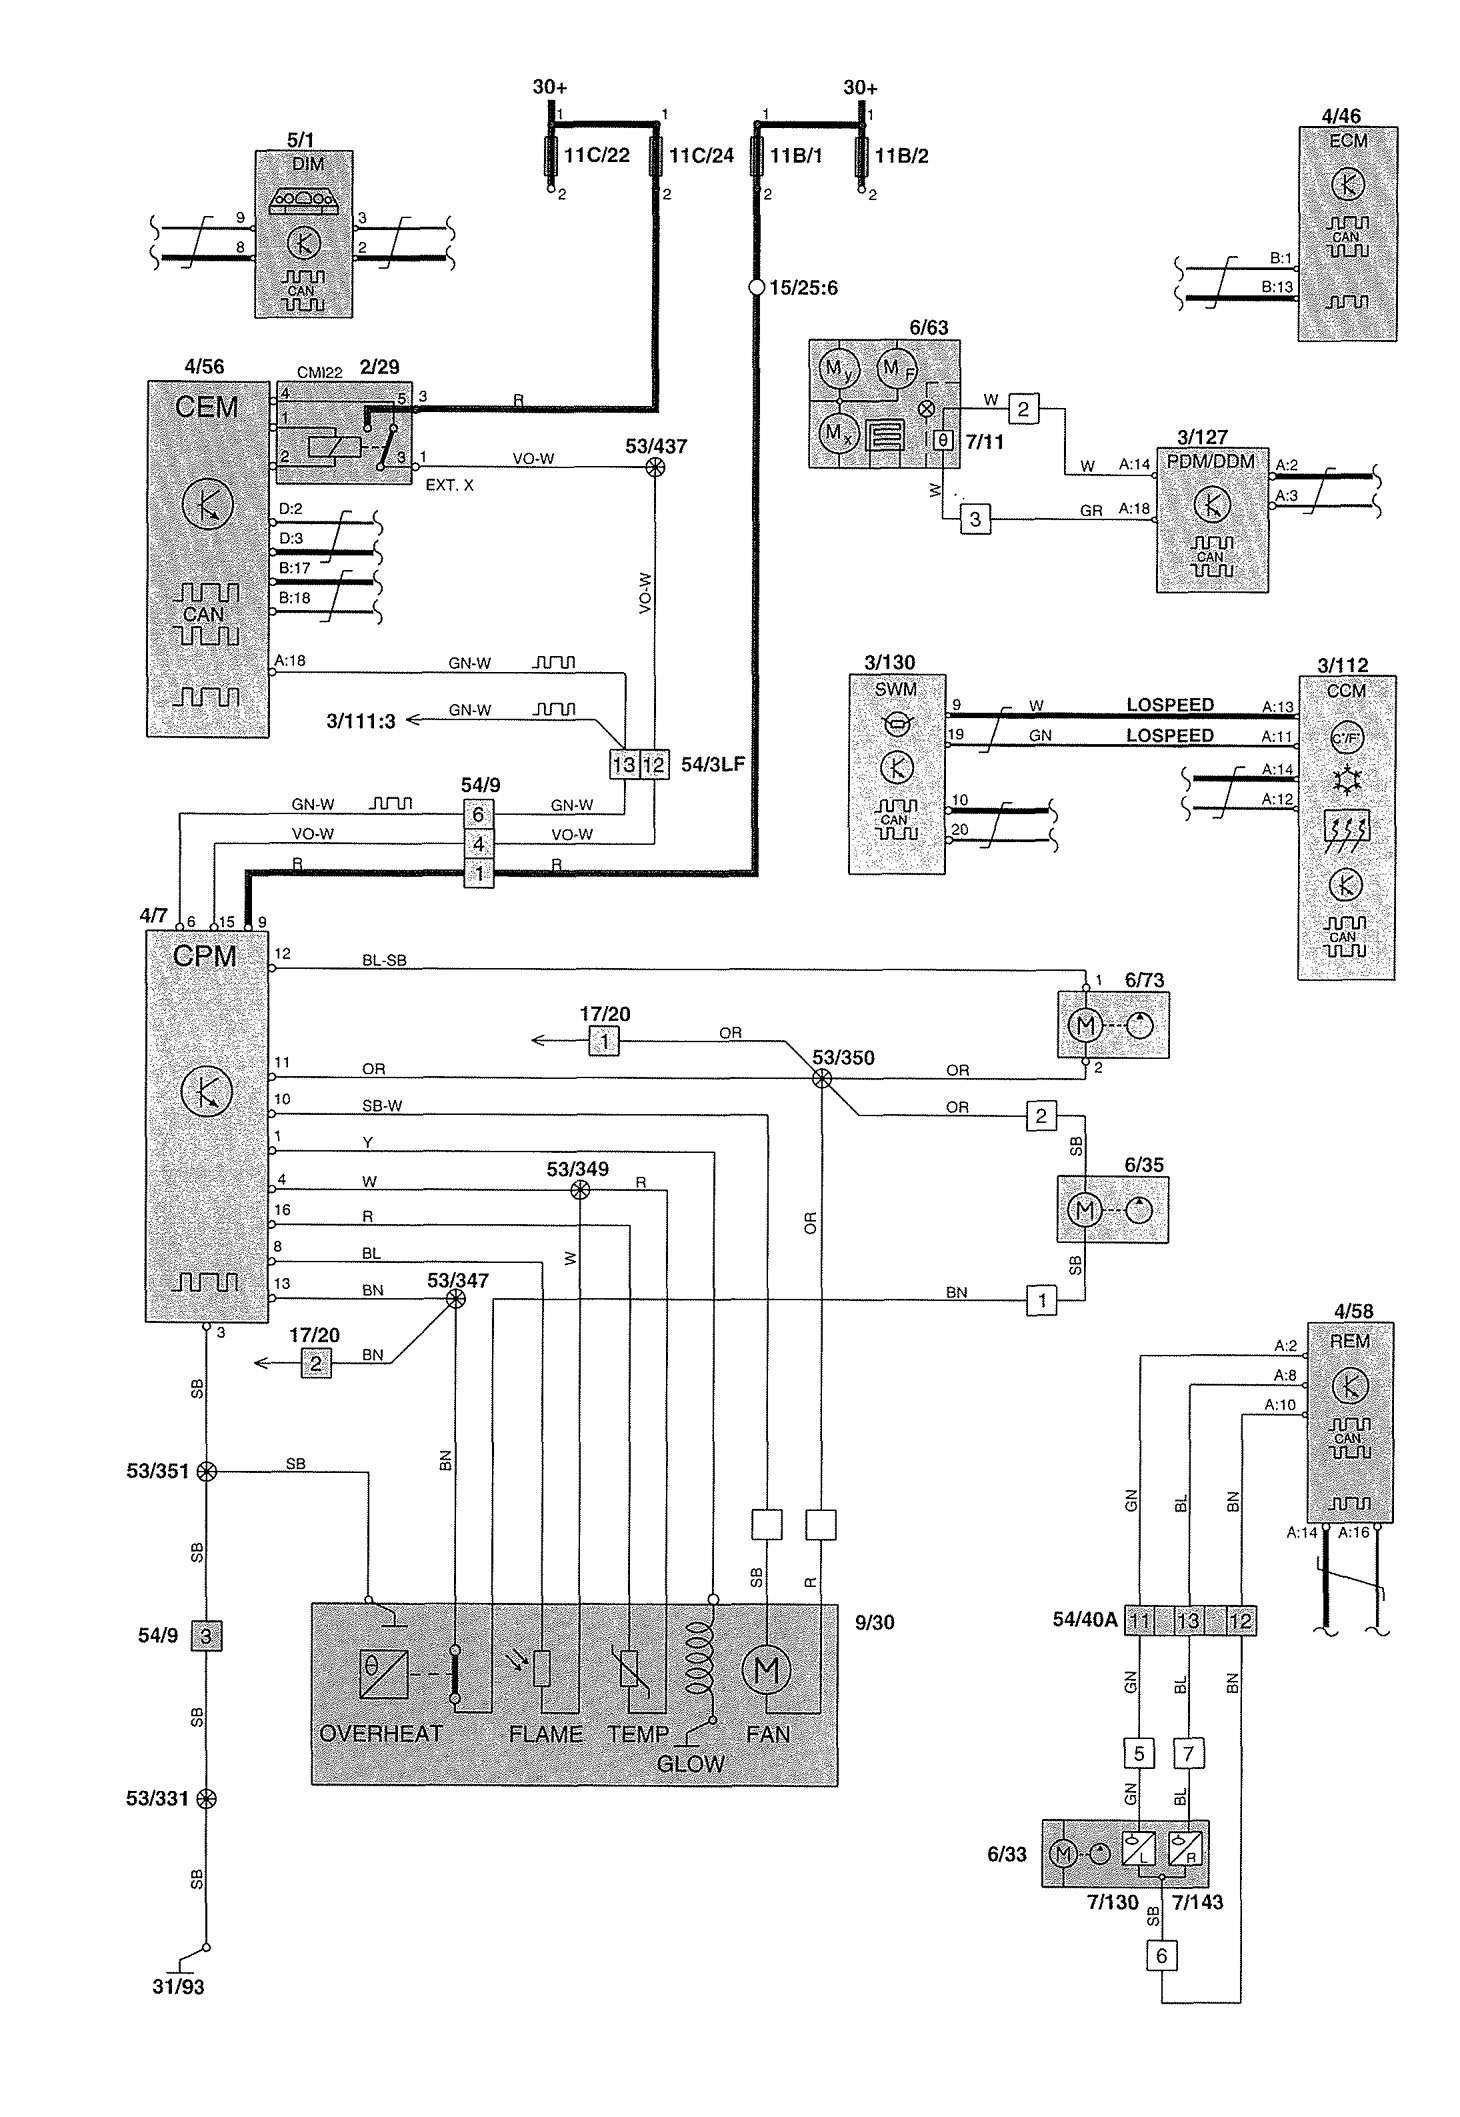 1997 bmw 740il heater wiring diagram  u2022 wiring diagram for free